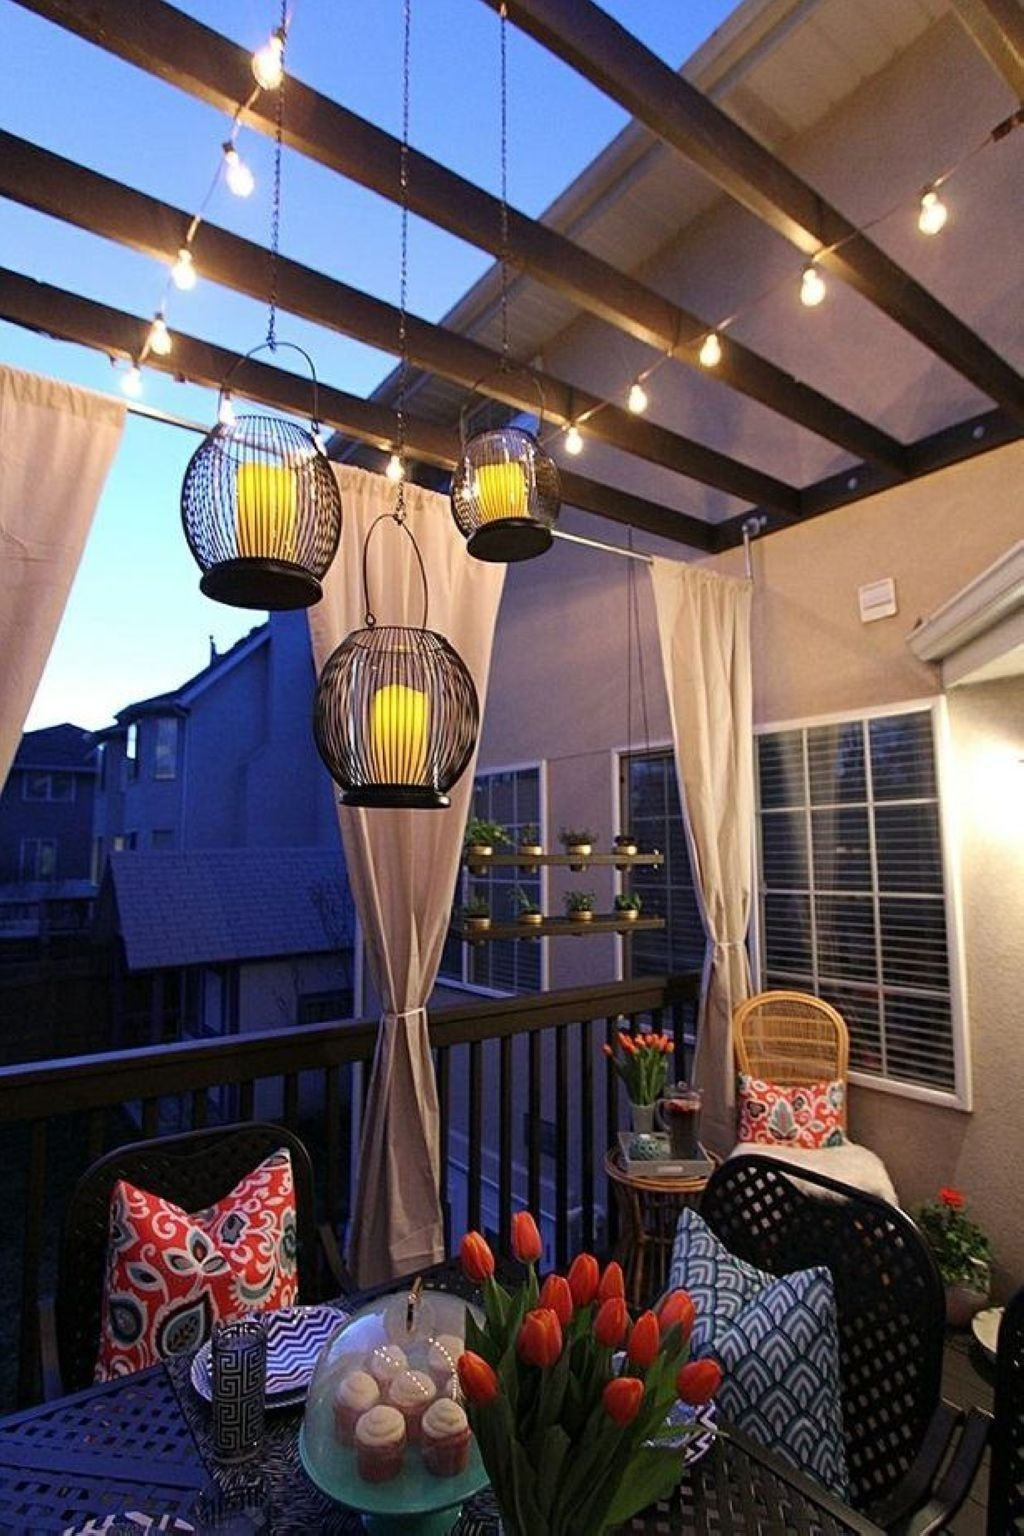 Cozy Apartment Balcony Decorating Ideas 33